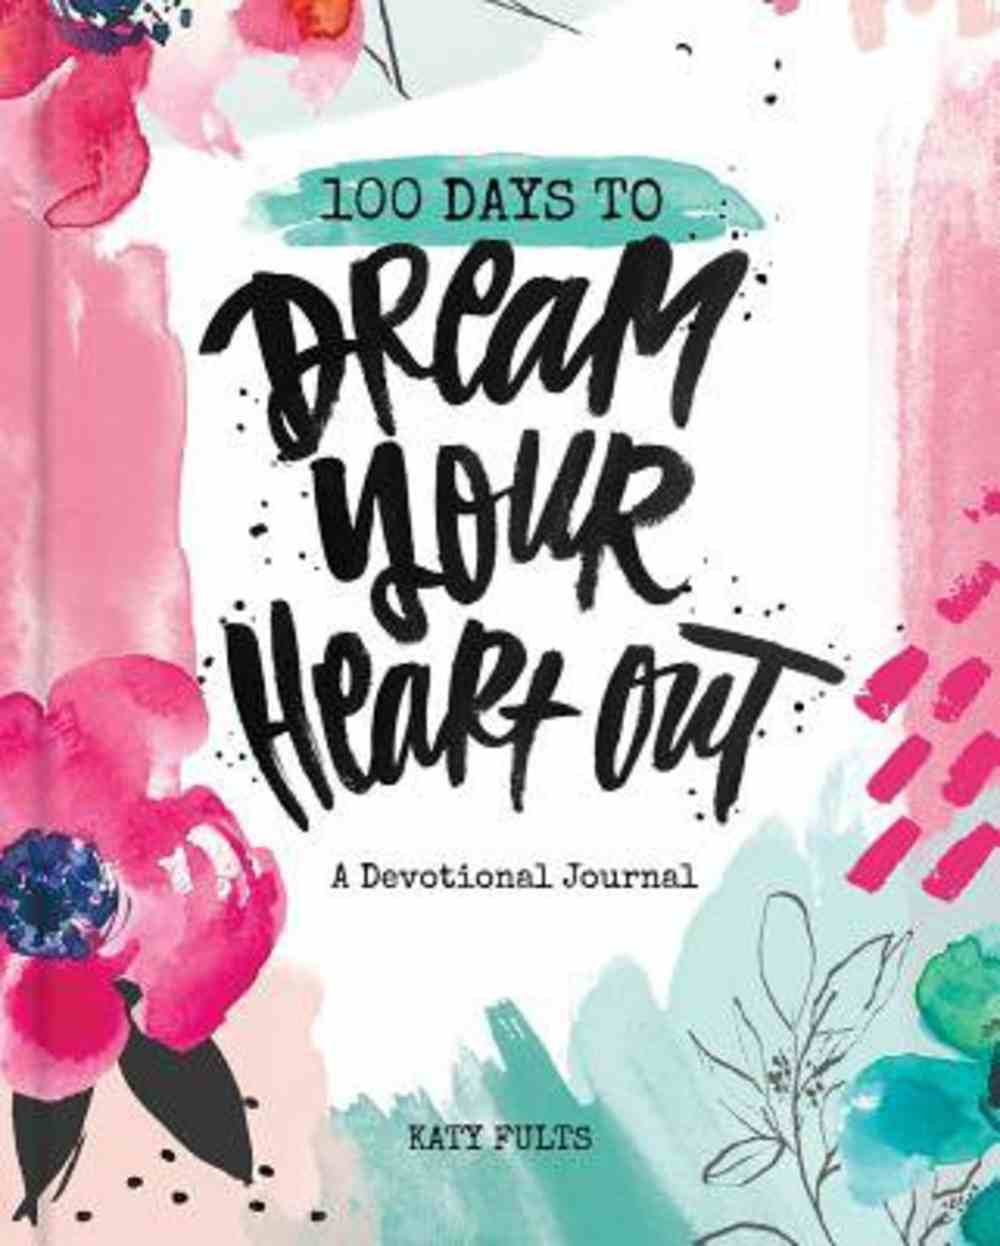 100 Days to Dream Your Heart Out: A Devotional Journal Paperback